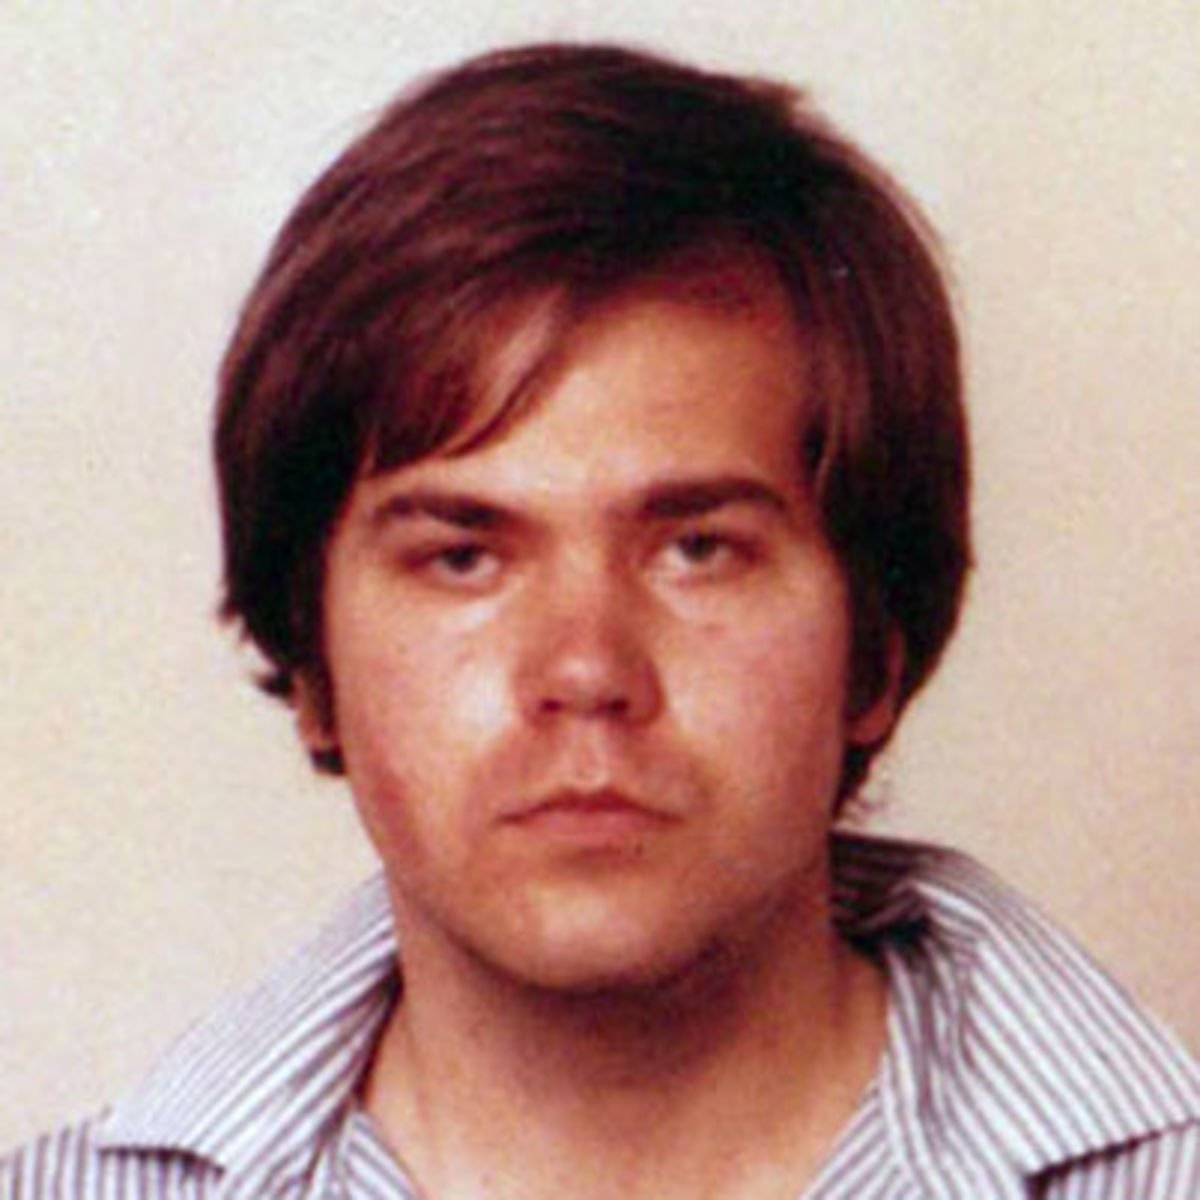 #BREAKING The man who shot President Reagan RELEASED #JohnHinckley more tonight 5pm the Vinnie Show LiVE on Facebook https://t.co/bFmUb2fIQd